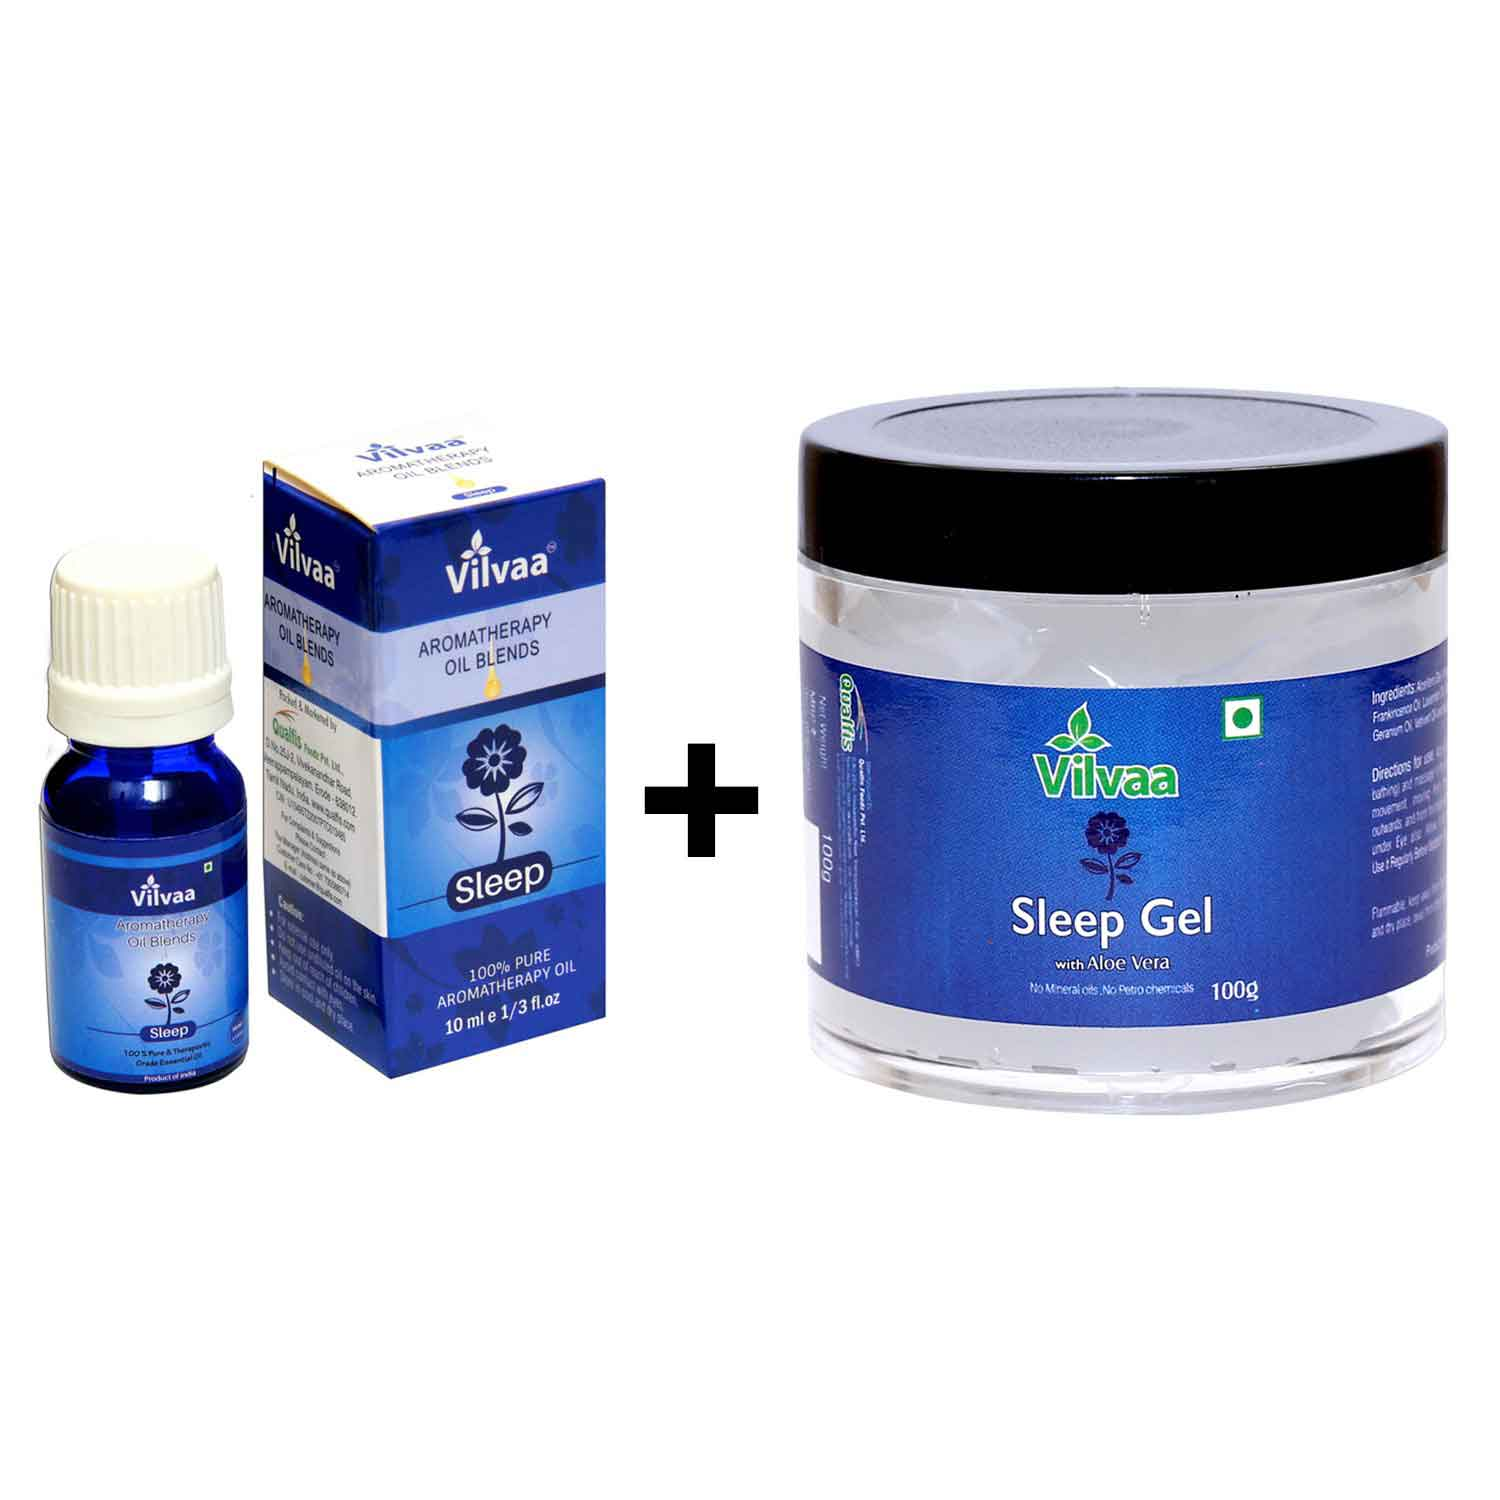 Aromatherpy Oil Blends - Sleep 10 ml + Vilvaa Sleep Gel With Aloe Vera  100g